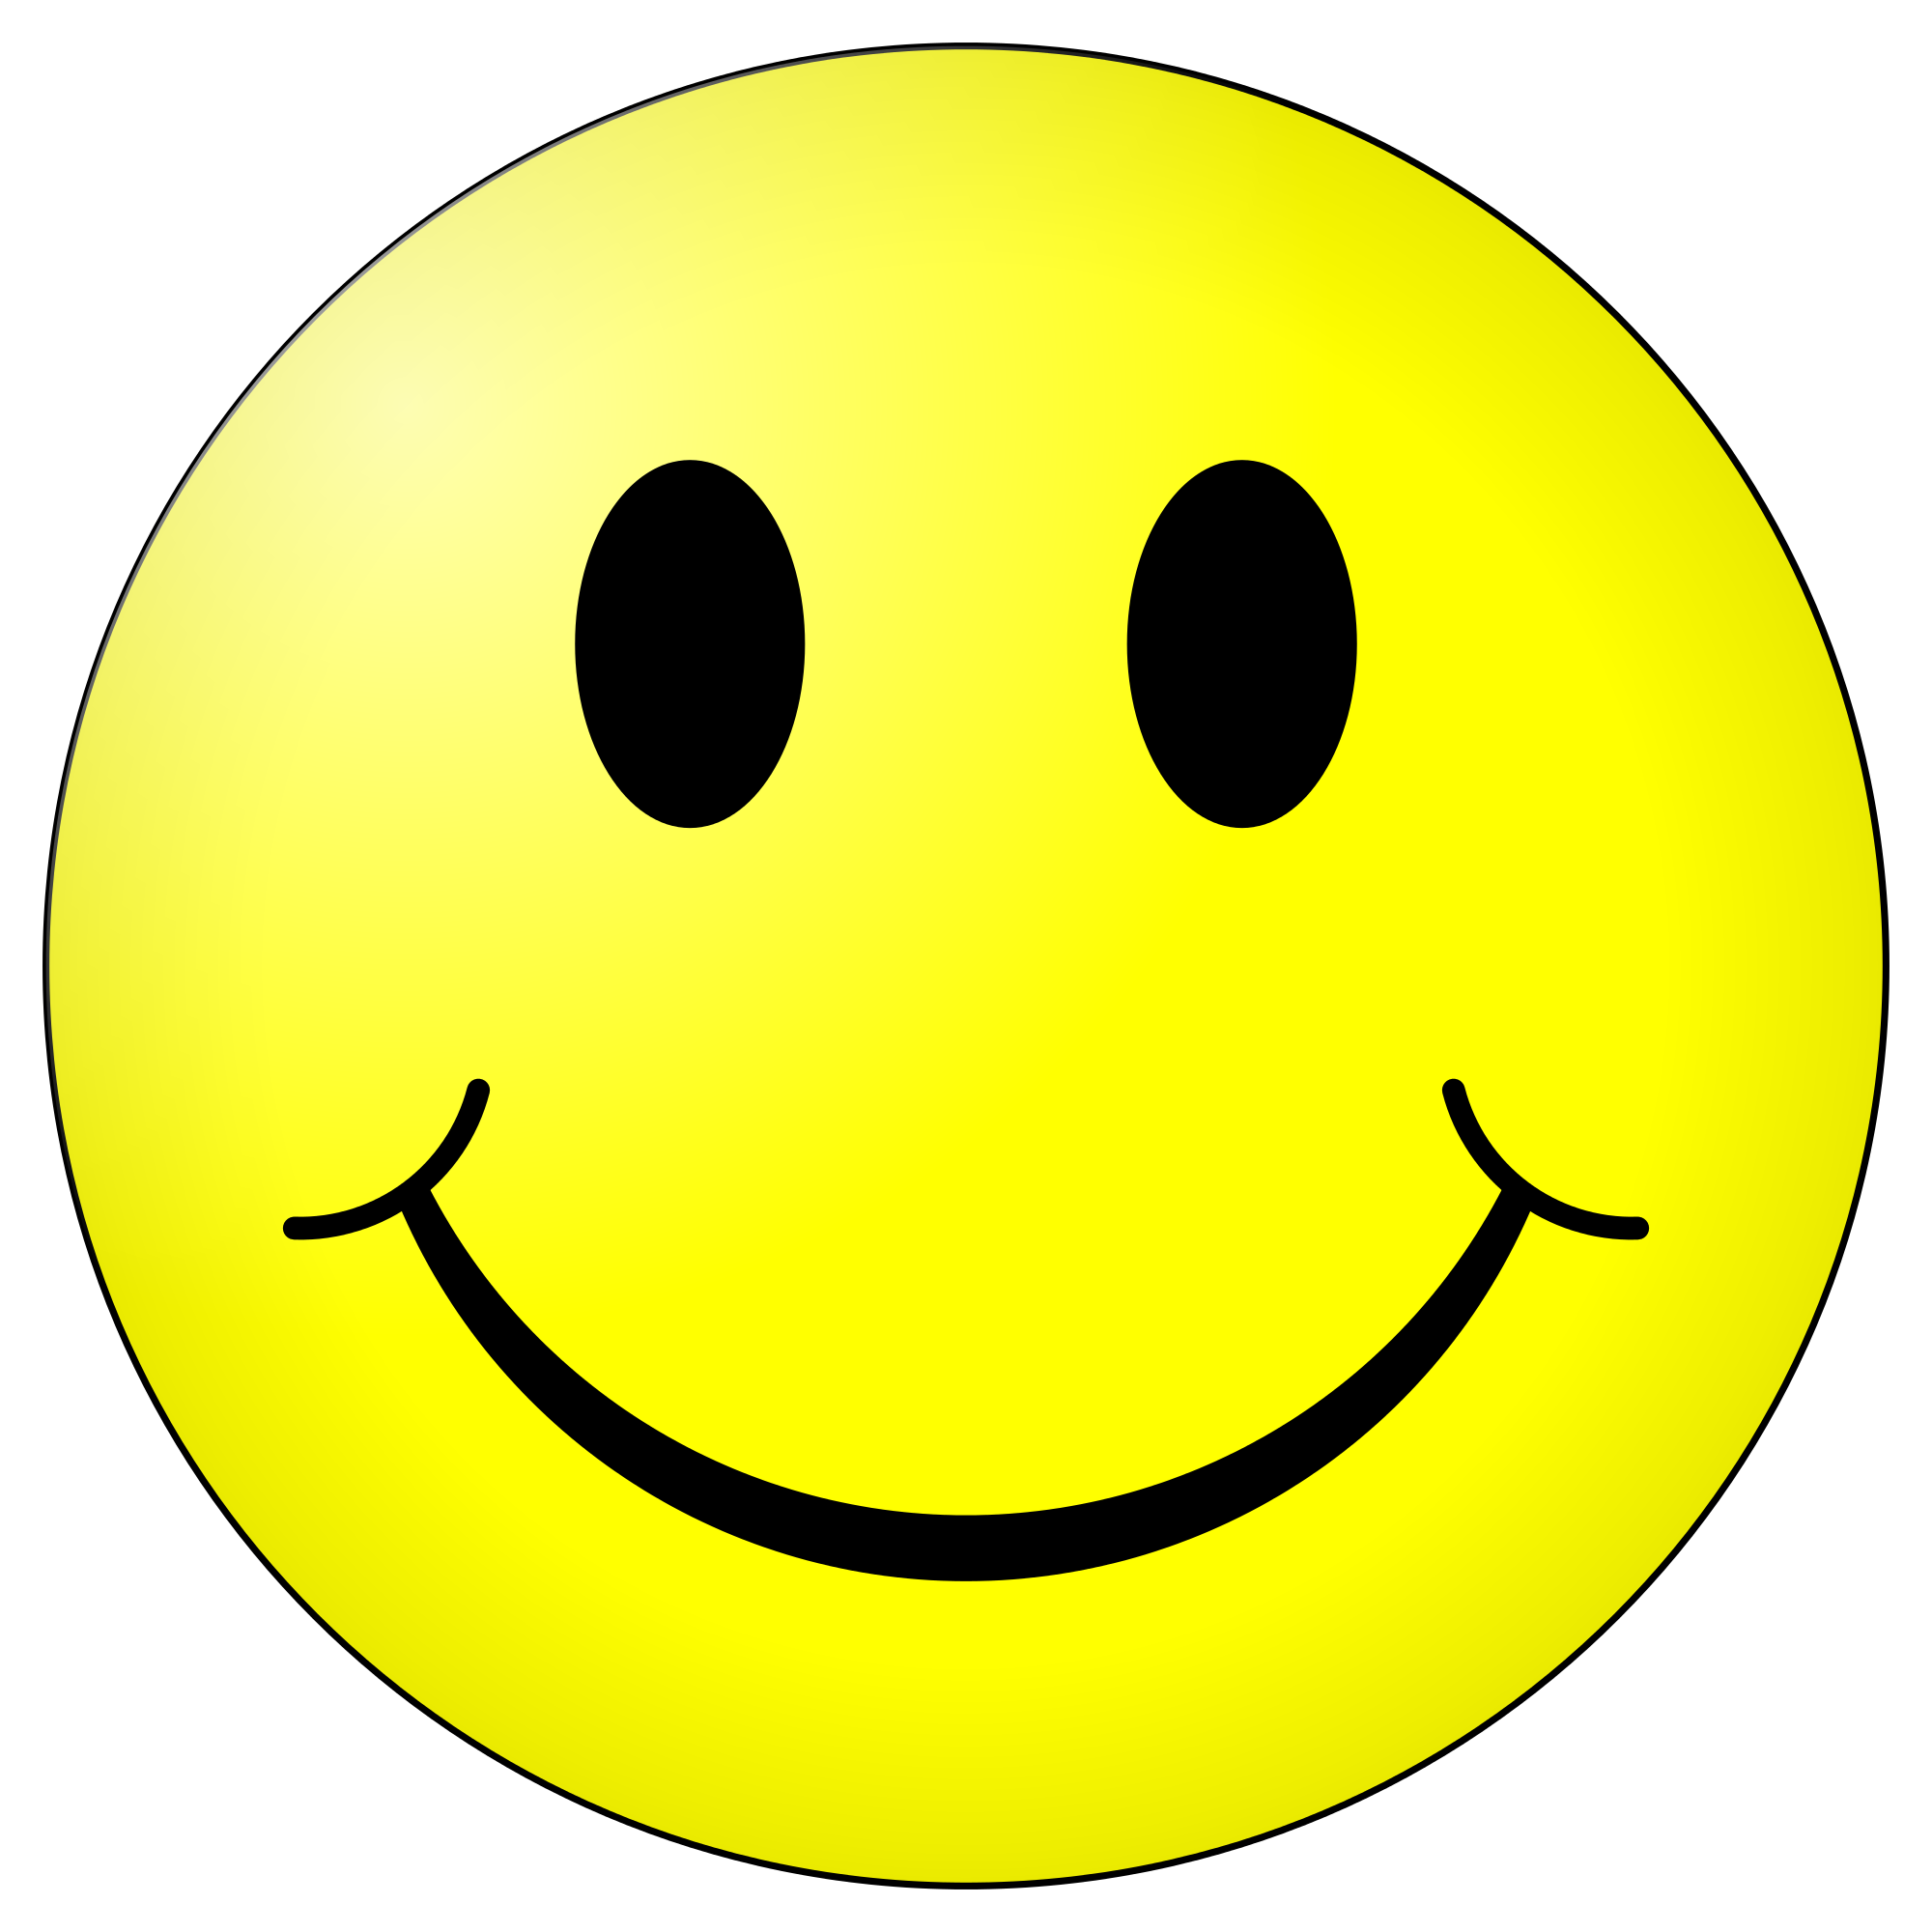 Kindness clipart smiling face, Kindness smiling face.